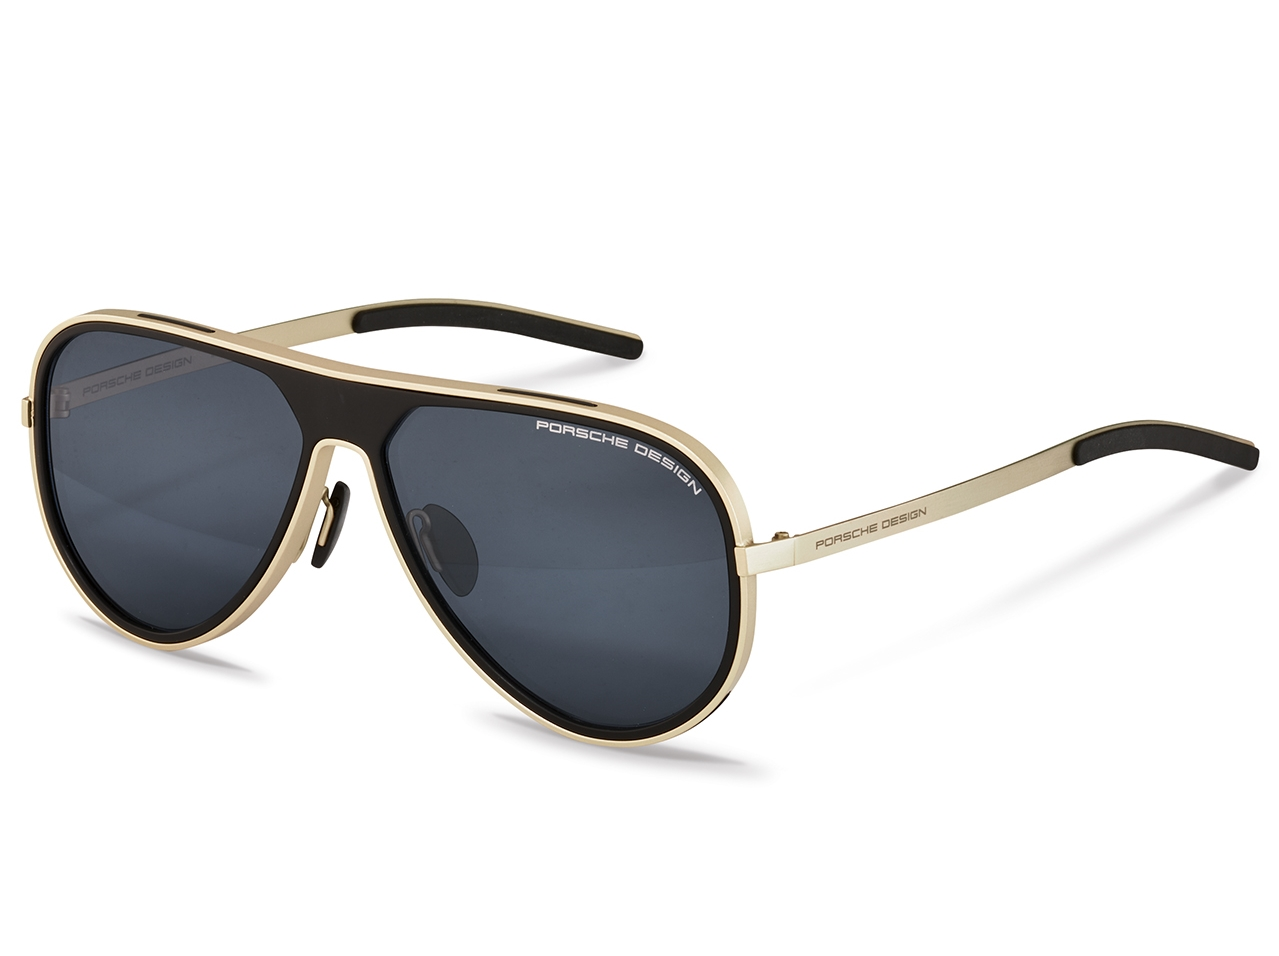 P'8684 Sunglasses